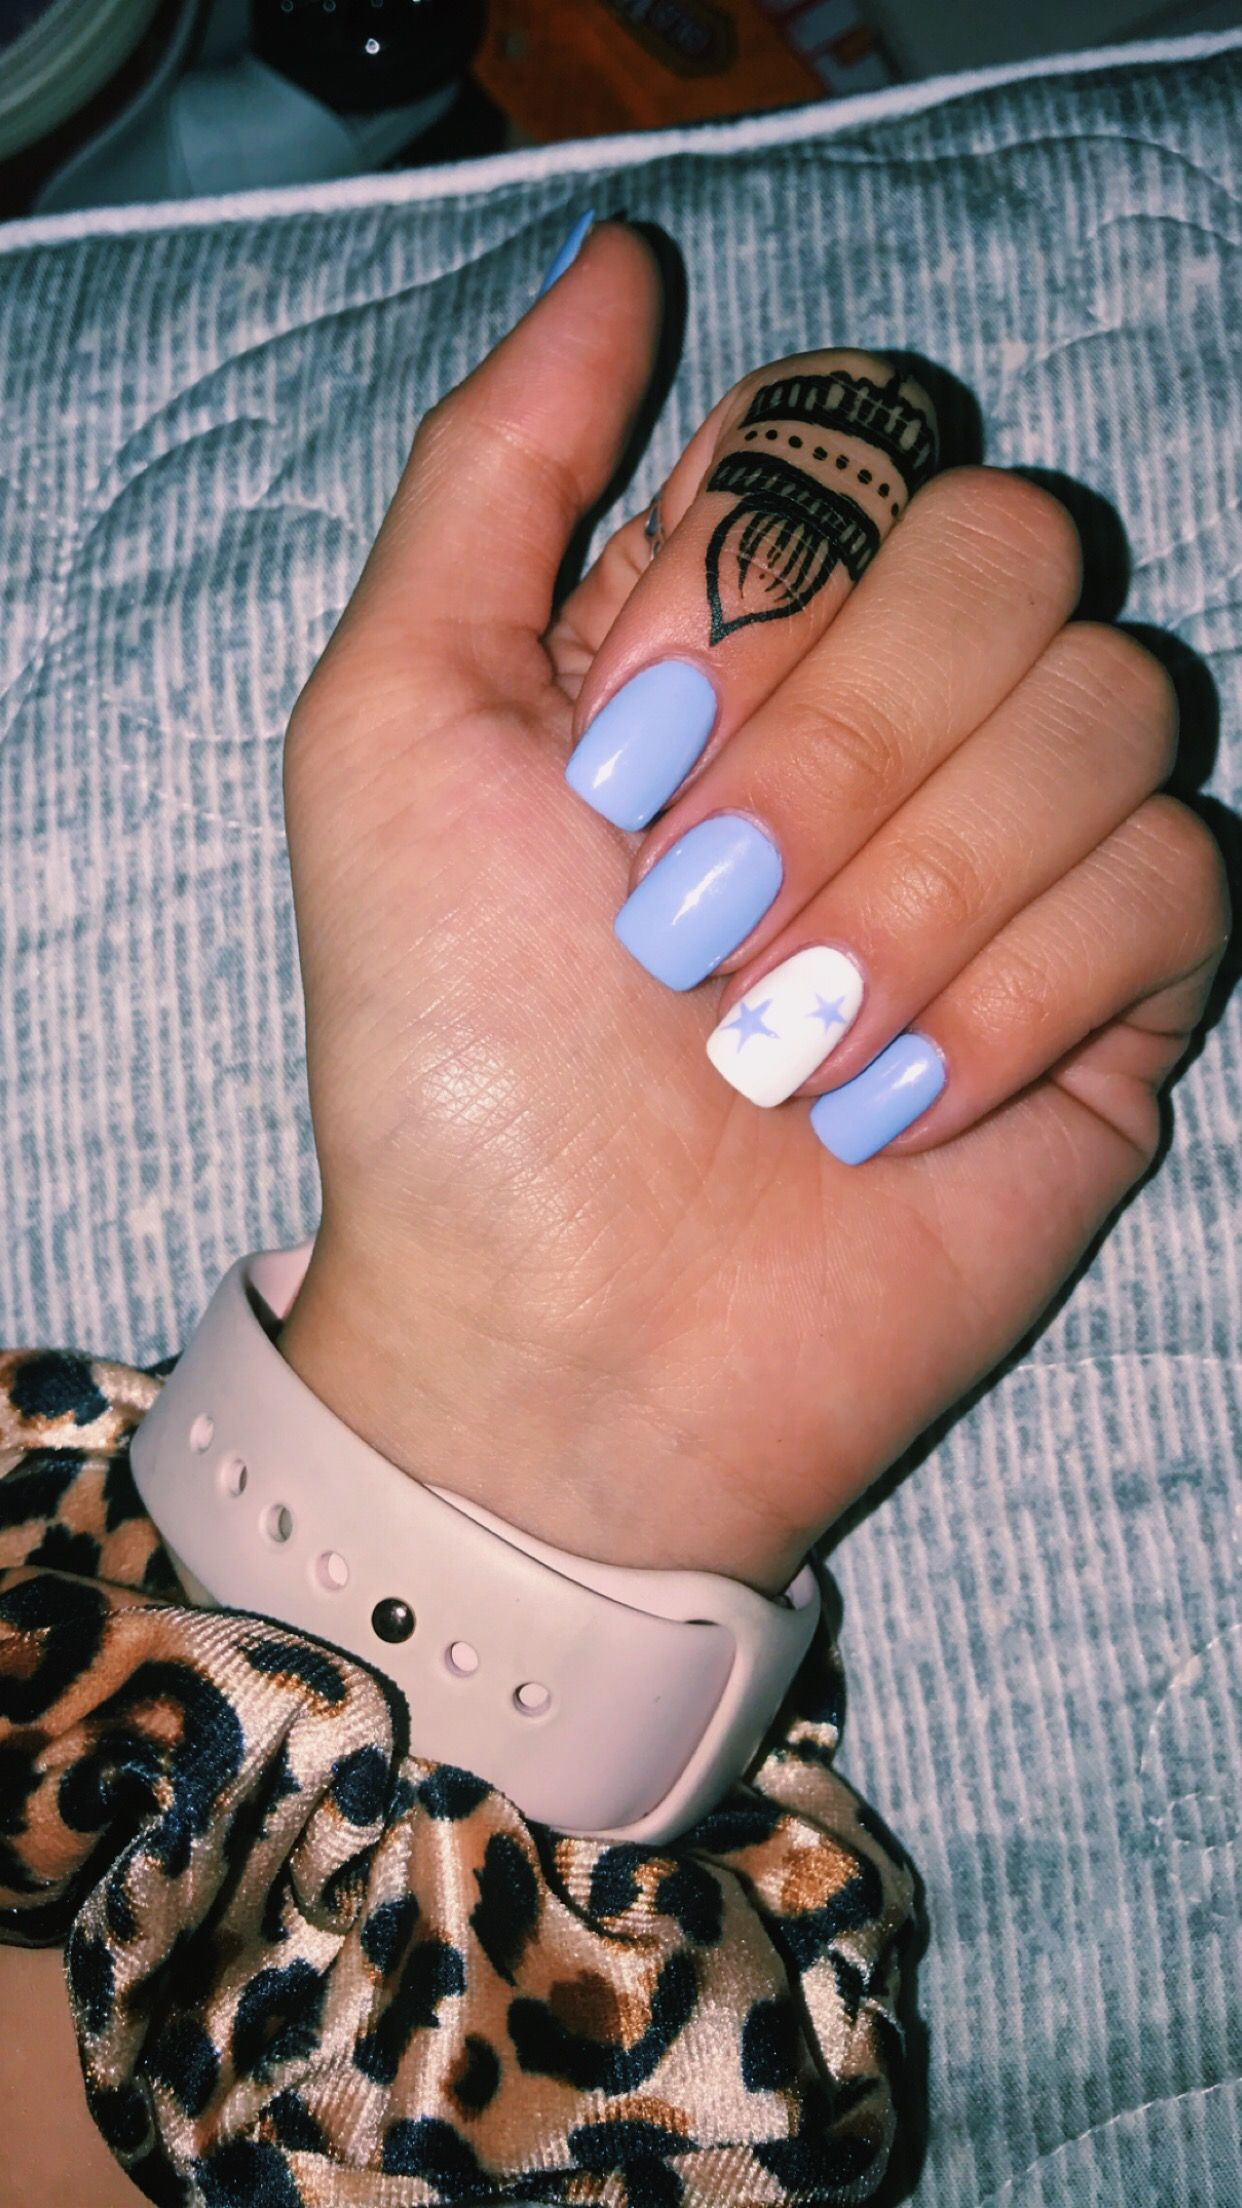 Vsco Star Acrylic Nails Vsconails Cute Acrylic Nails Pretty Acrylic Nails Short Acrylic Nails